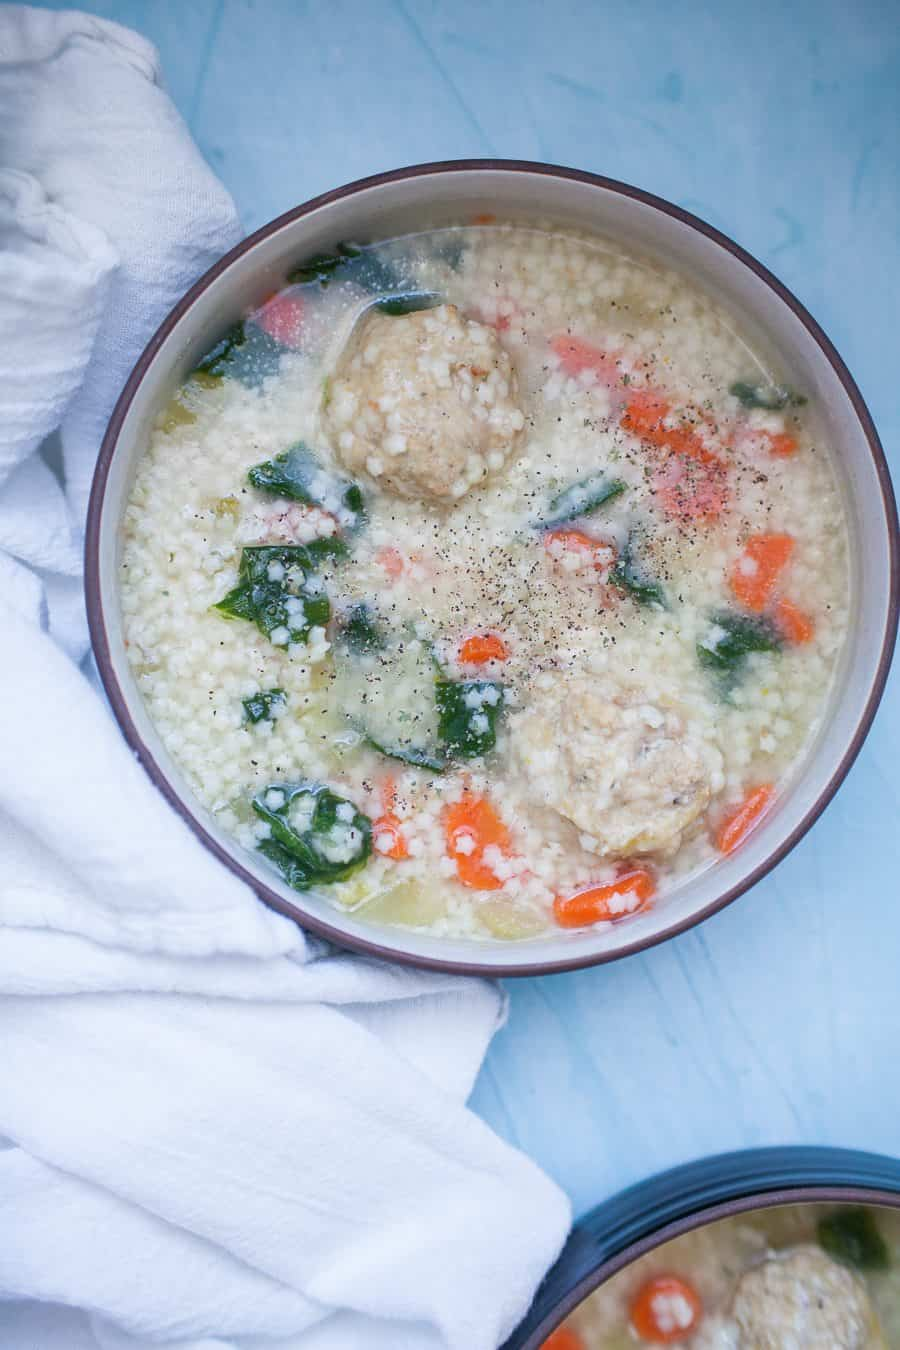 Shallow bowl of homemade Italian wedding soup with carrots, celery, onions, spinach, pasta and meatballs.